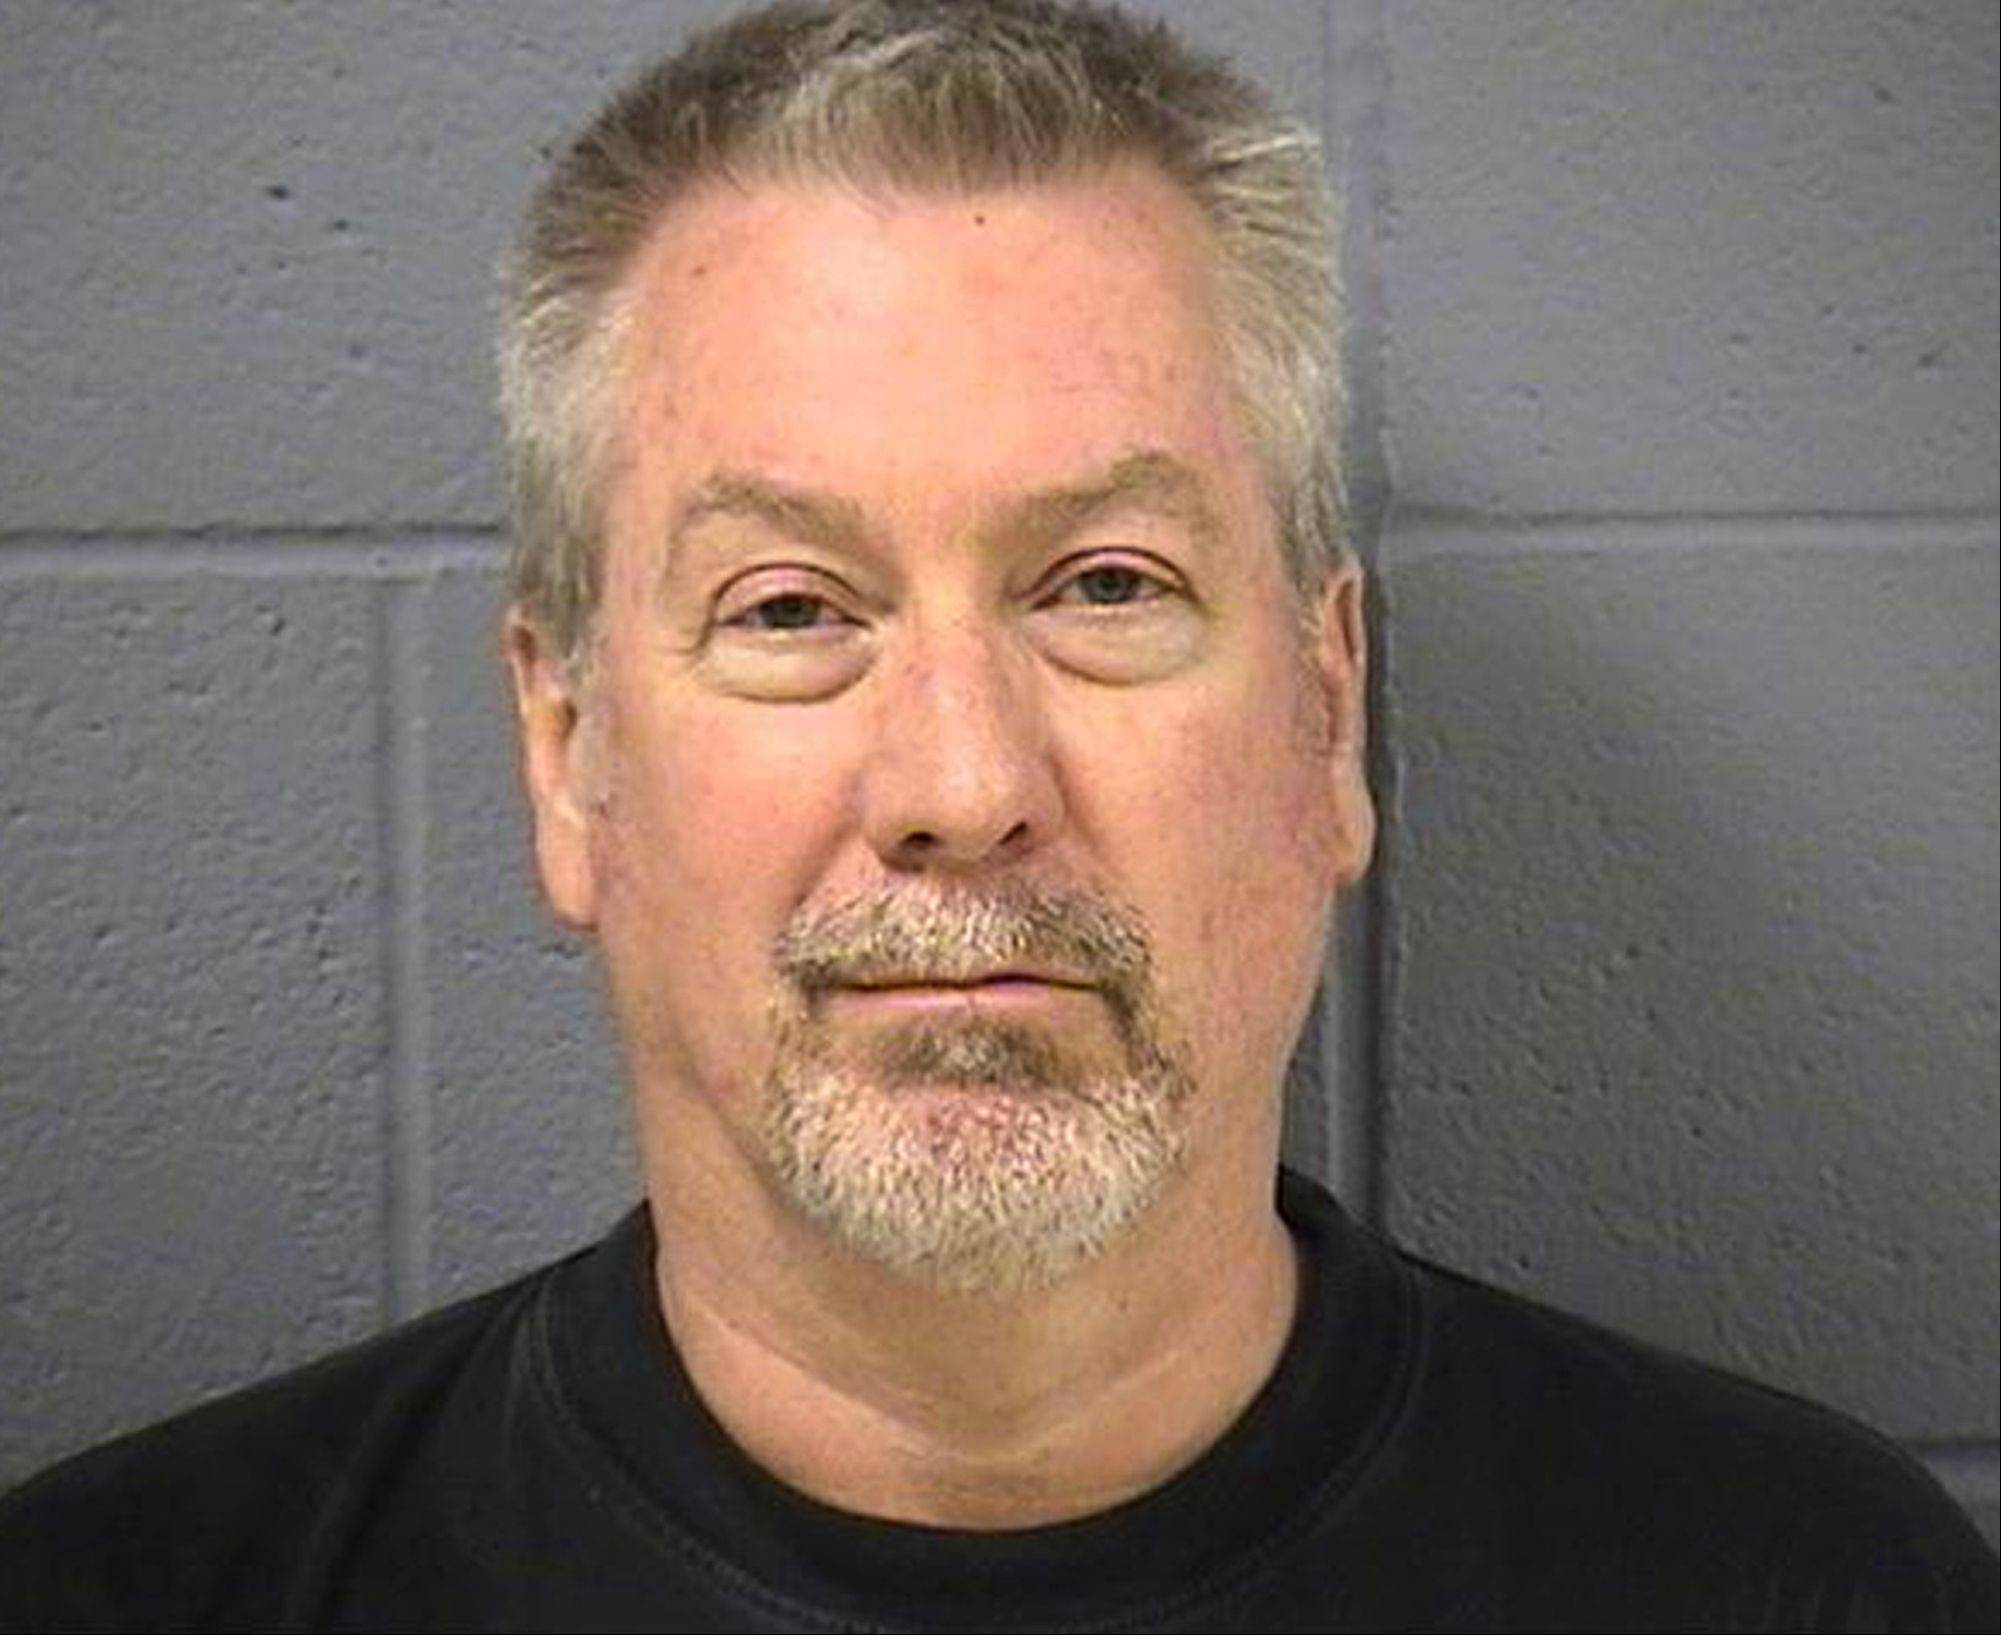 Drew Peterson in his booking photo.